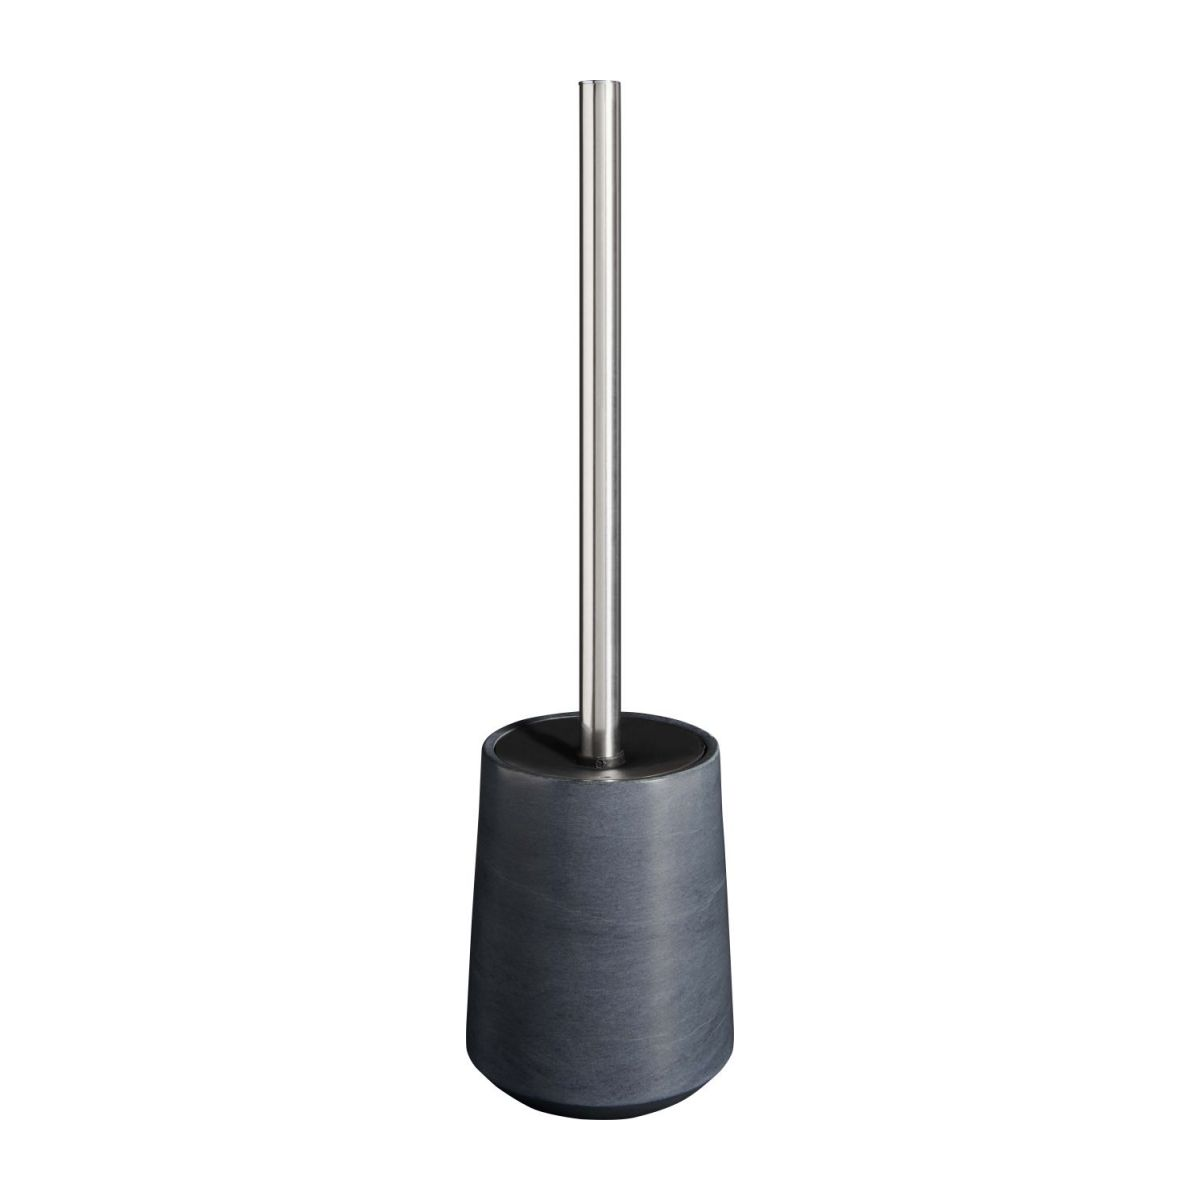 Grey soapstone toilet brush n°1